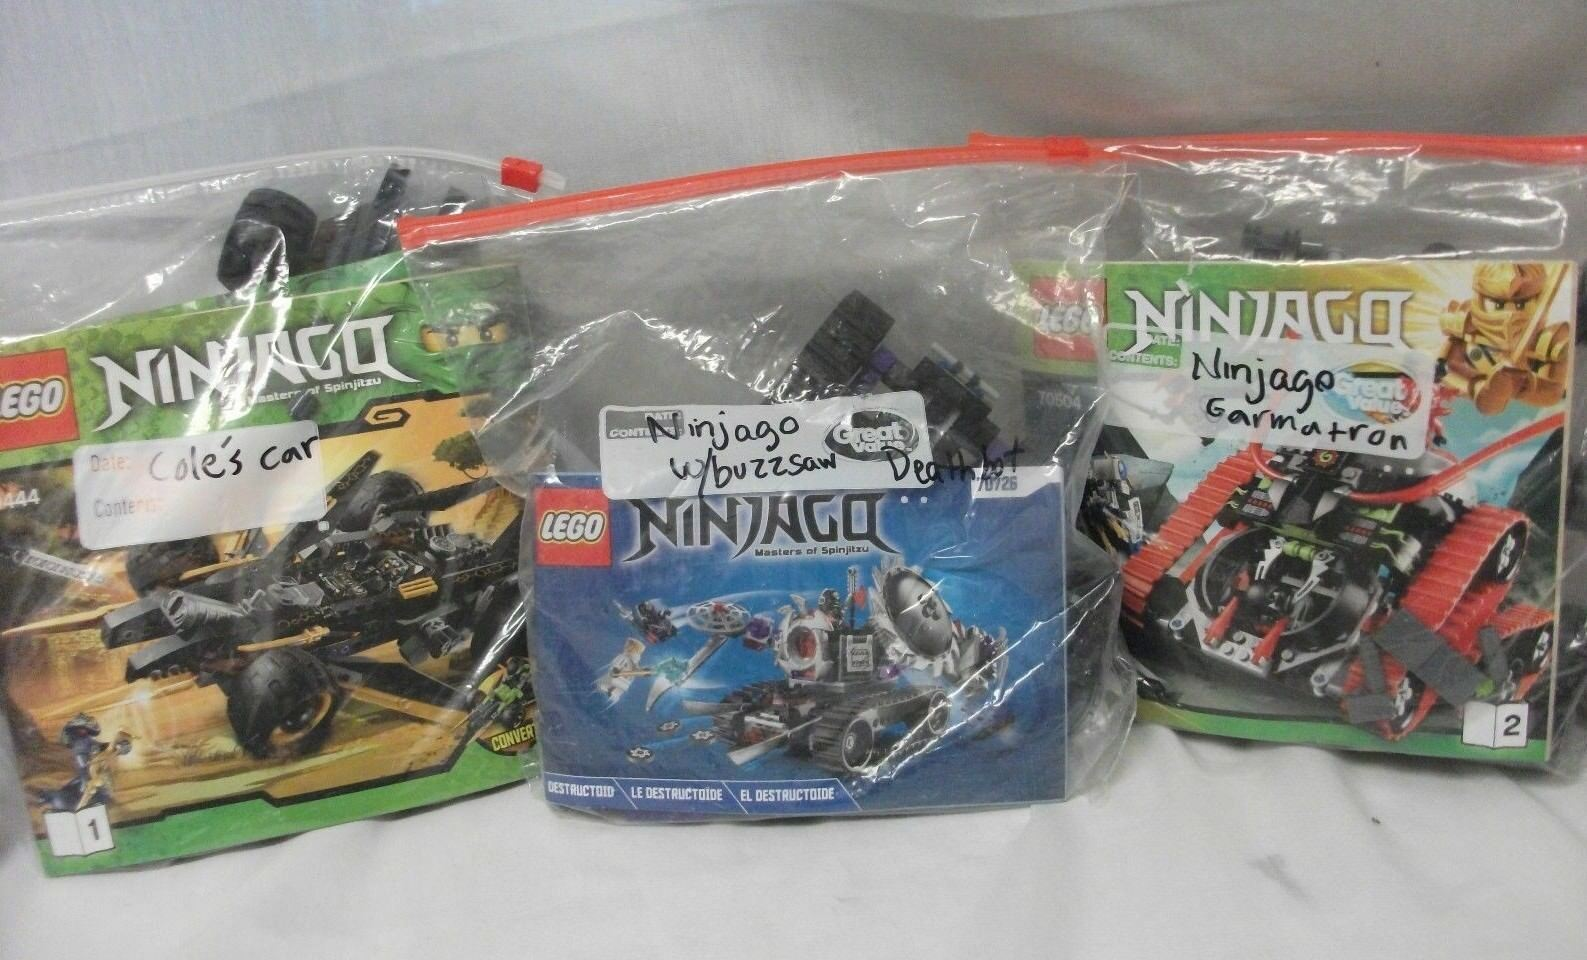 LOT OF 3 Lego Ninjago Masters of Spinjitsu 70504 70726 9444